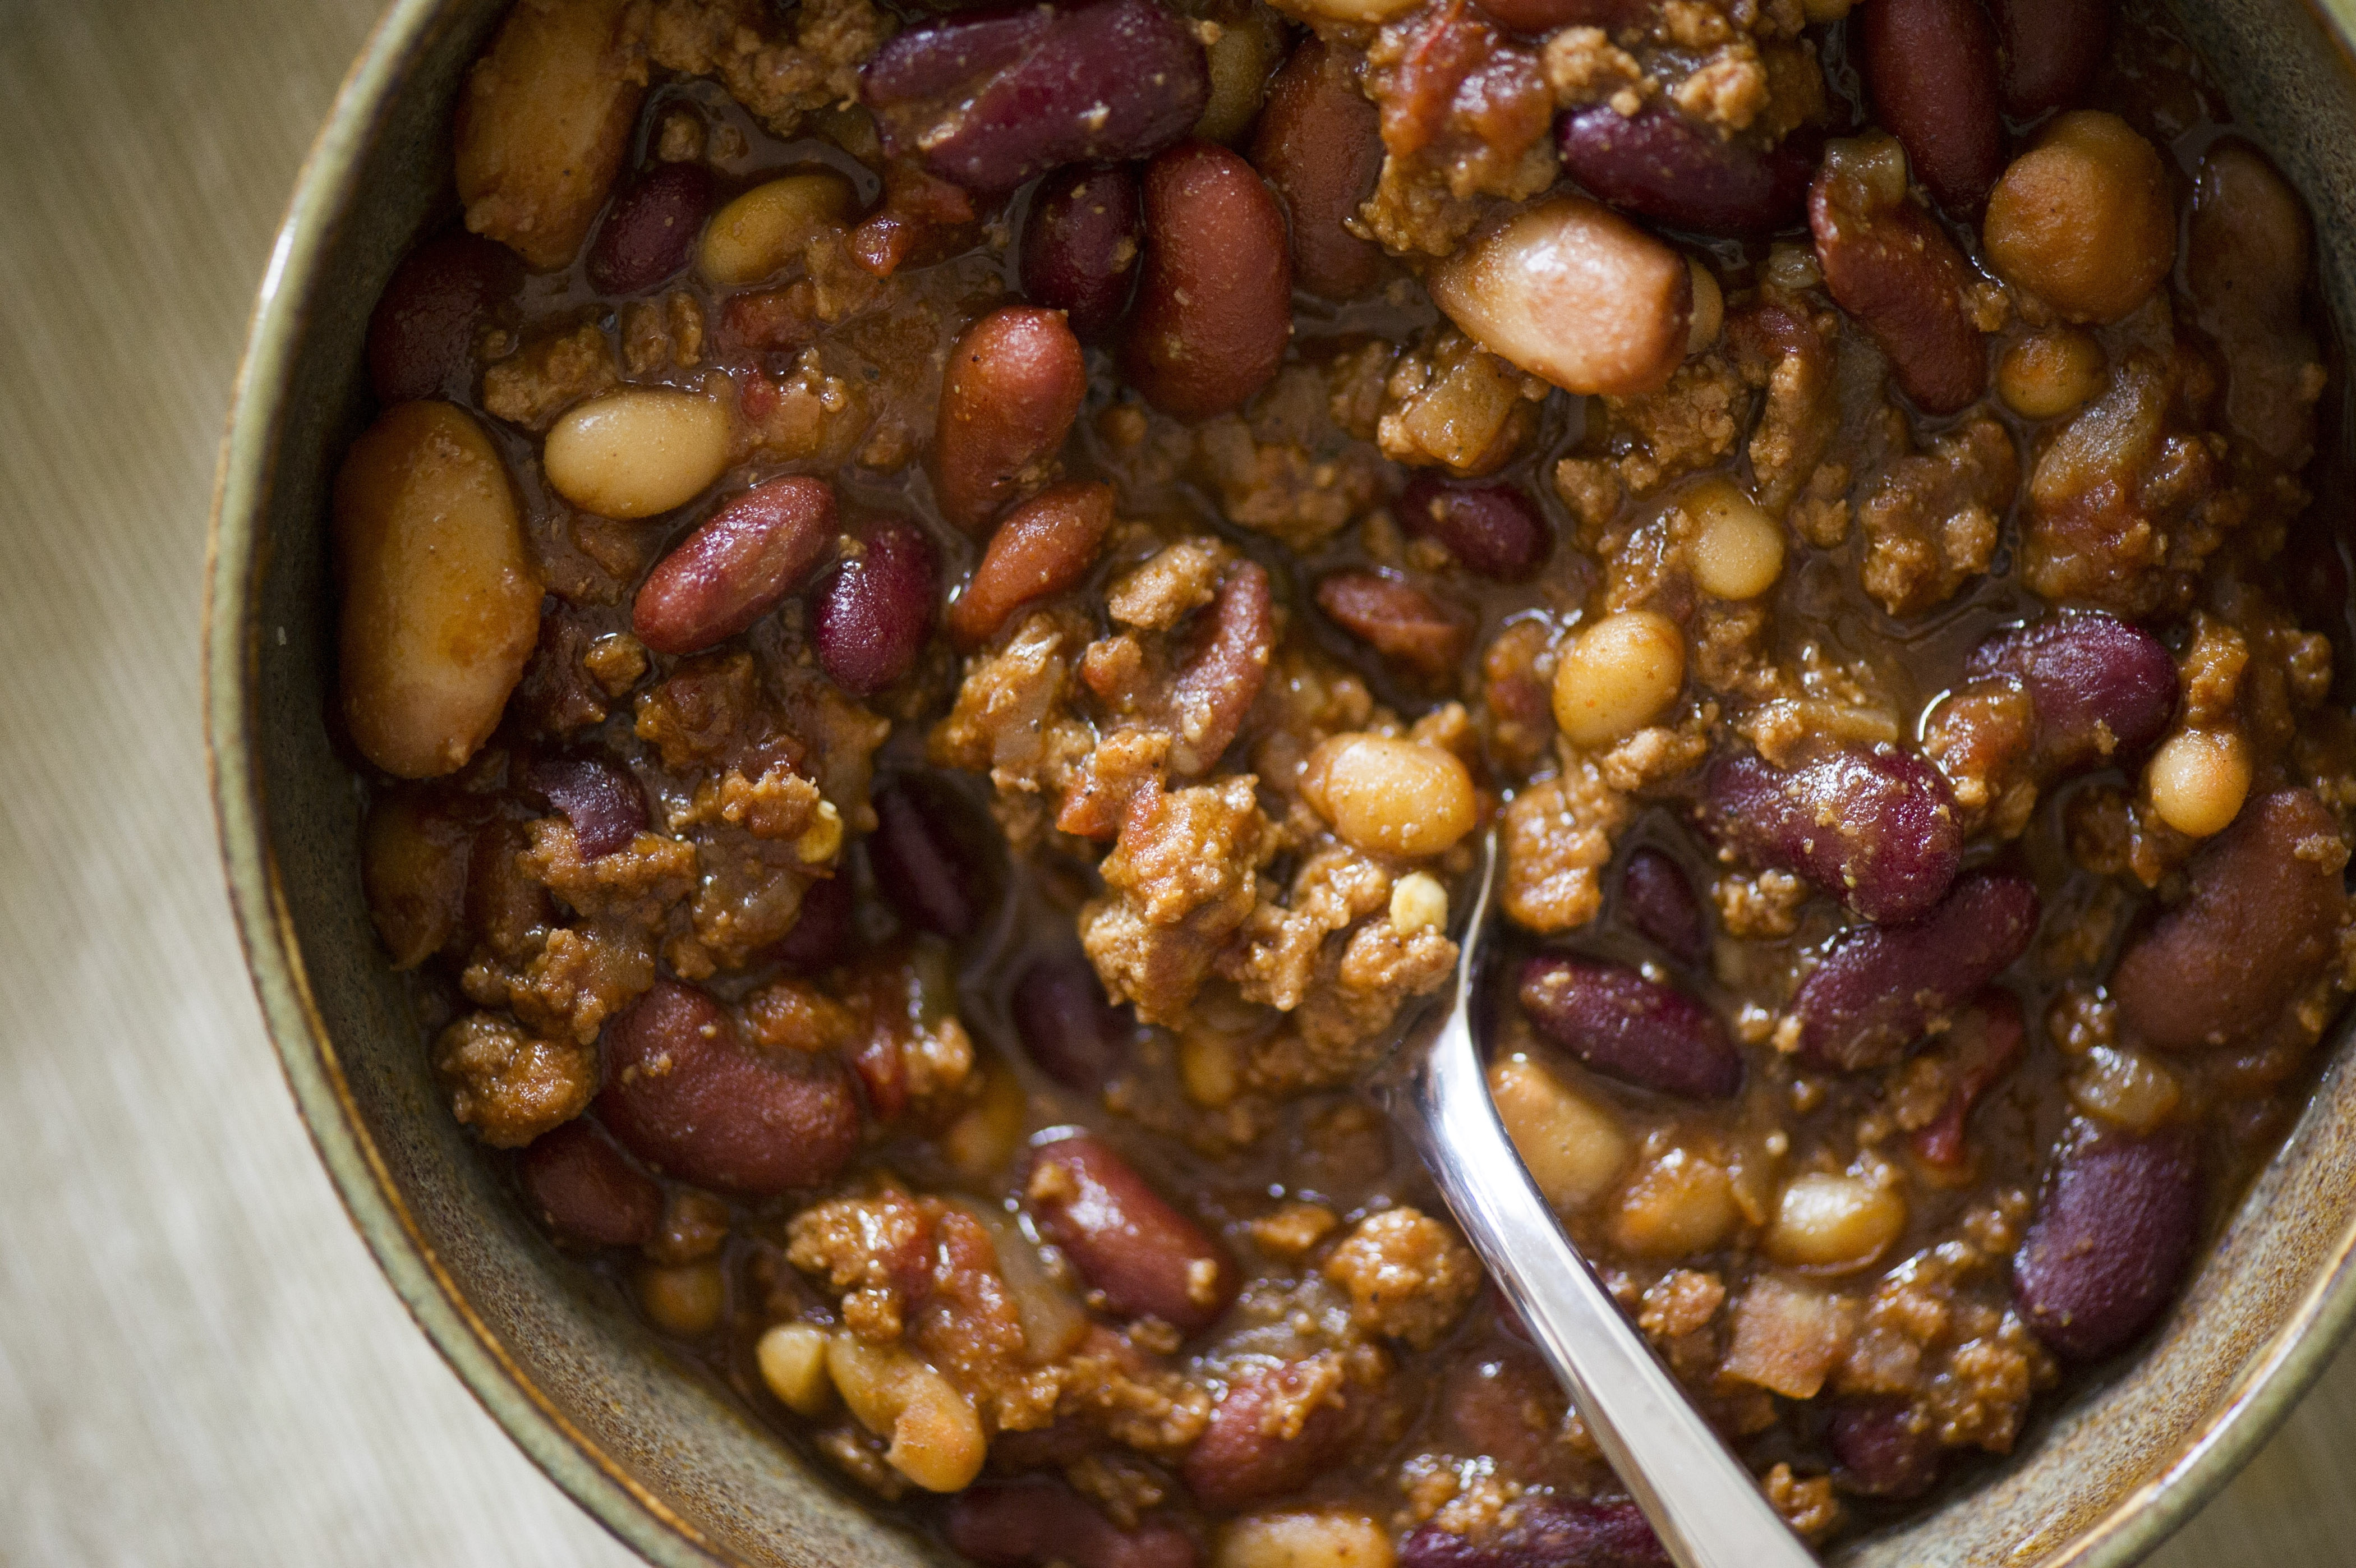 Just Good Chili, with chocolate and coffee added for complexity, hot sauce for kick, and beans.